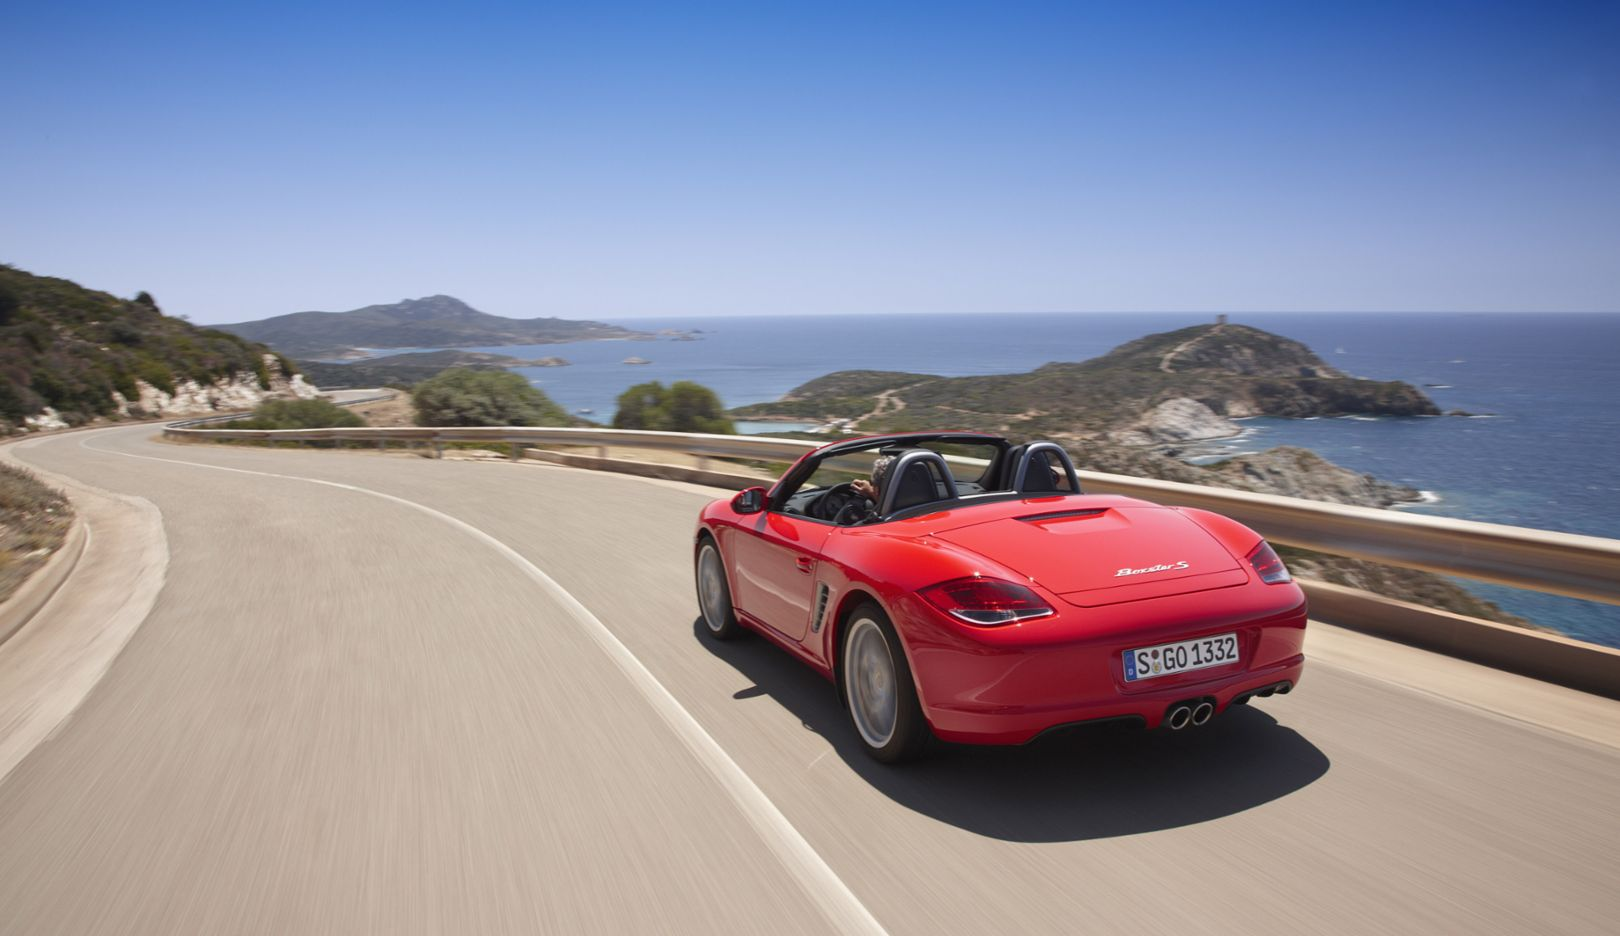 987 generation: model years 2005–2011. Over the years, the technology is fine-tuned again and again. For example, the engine output of the 987 generation Boxster increases to 188 kW (255 hp) by the end of the production period in 2011 and to 228 kW (310 hp) for the Boxster S.